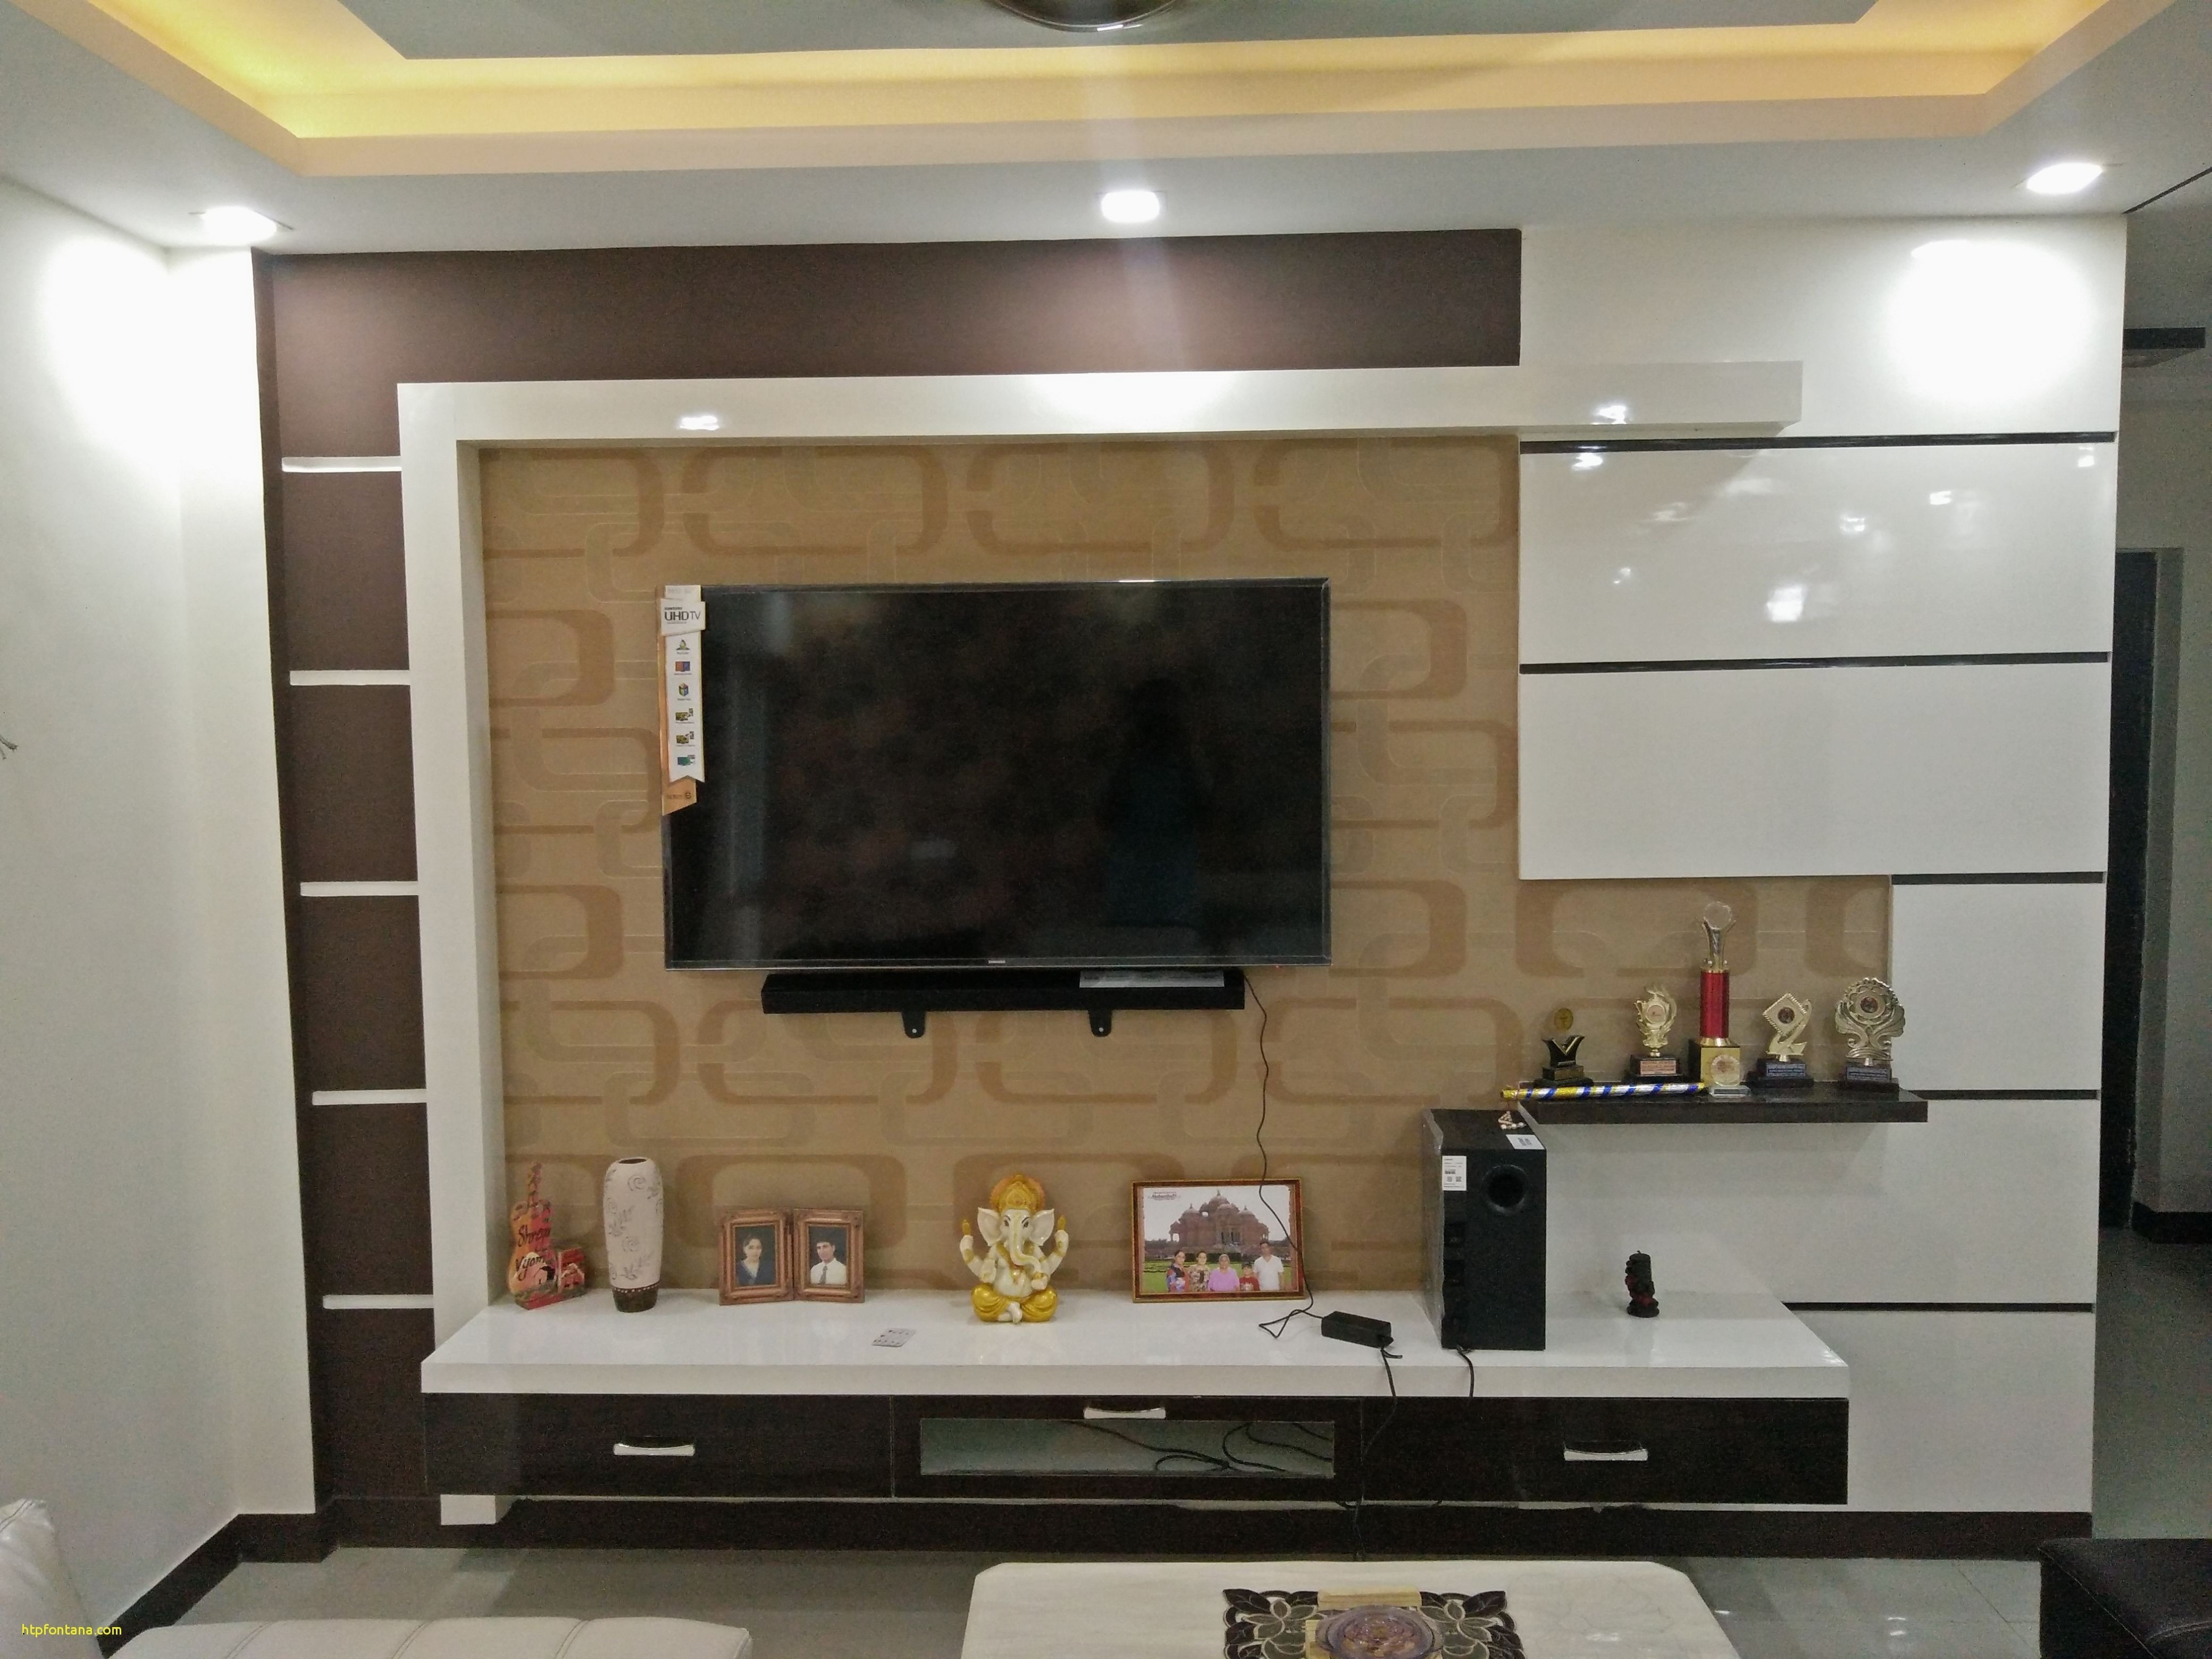 Ideas for Tv Stand top Kitchen Cabinets Stunning Cabinet 0d Bright Lights Big Color Design